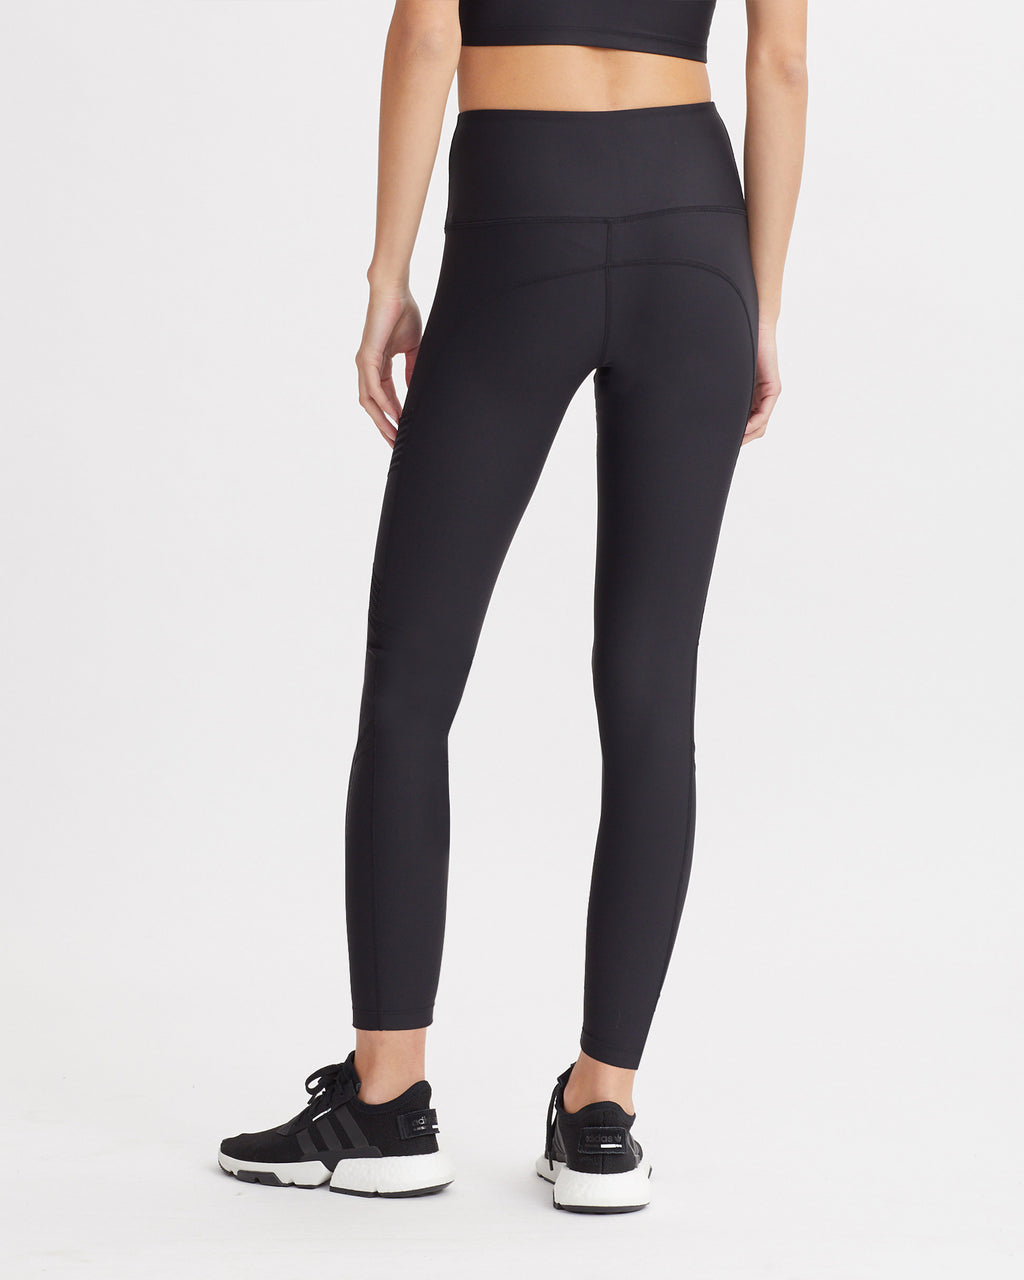 CARLEEN LEGGINGS BLACK & MAUVE COMBO